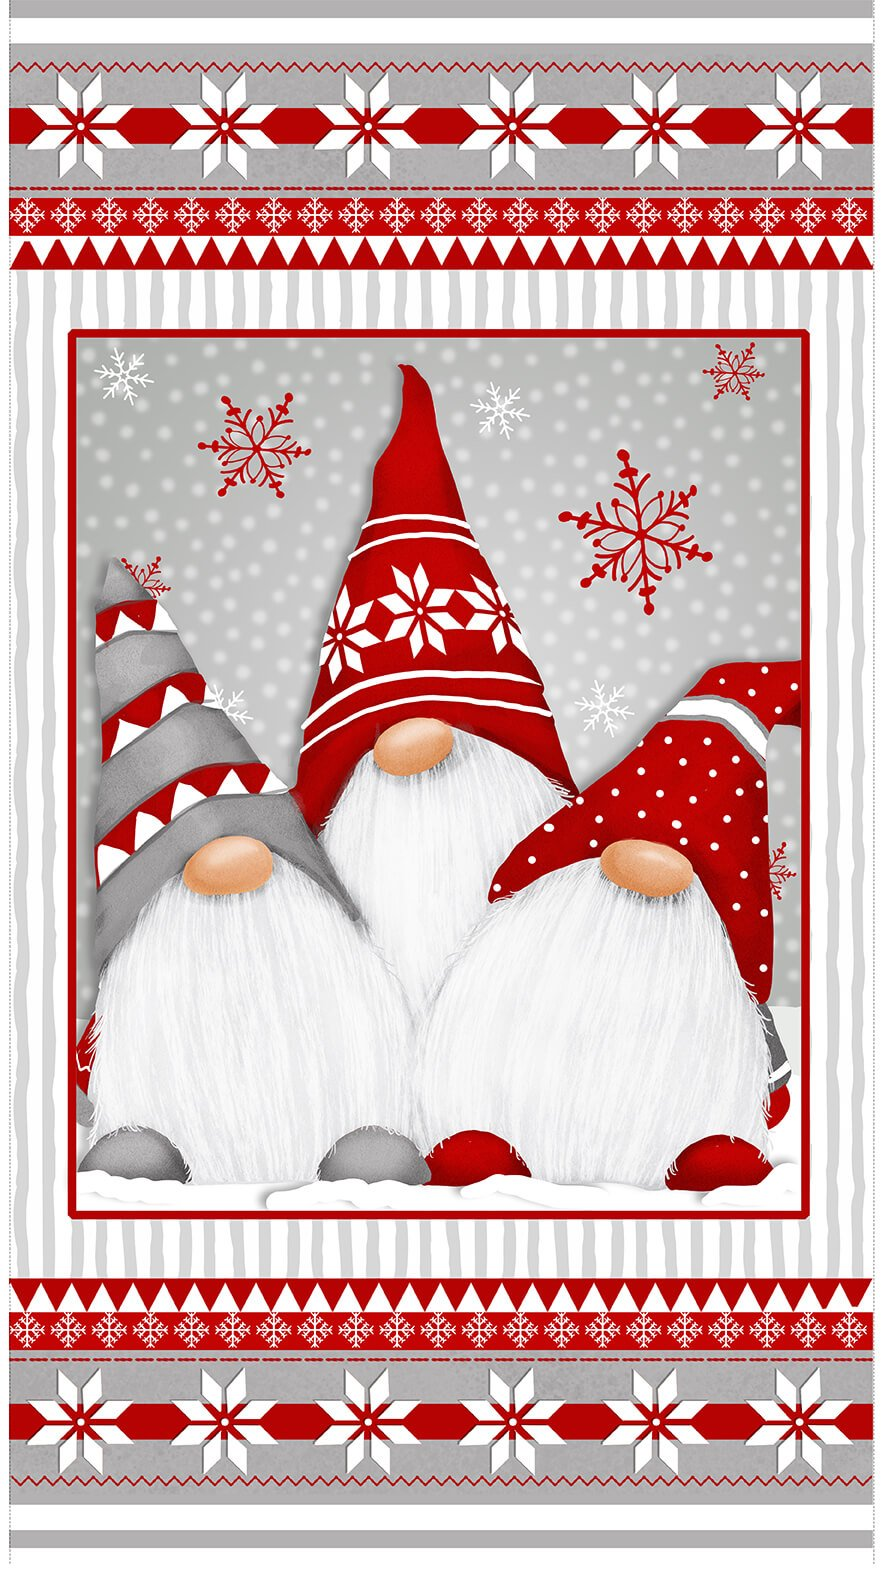 F1622P-89 Winter Whimsy Gnomes Panel red gray white